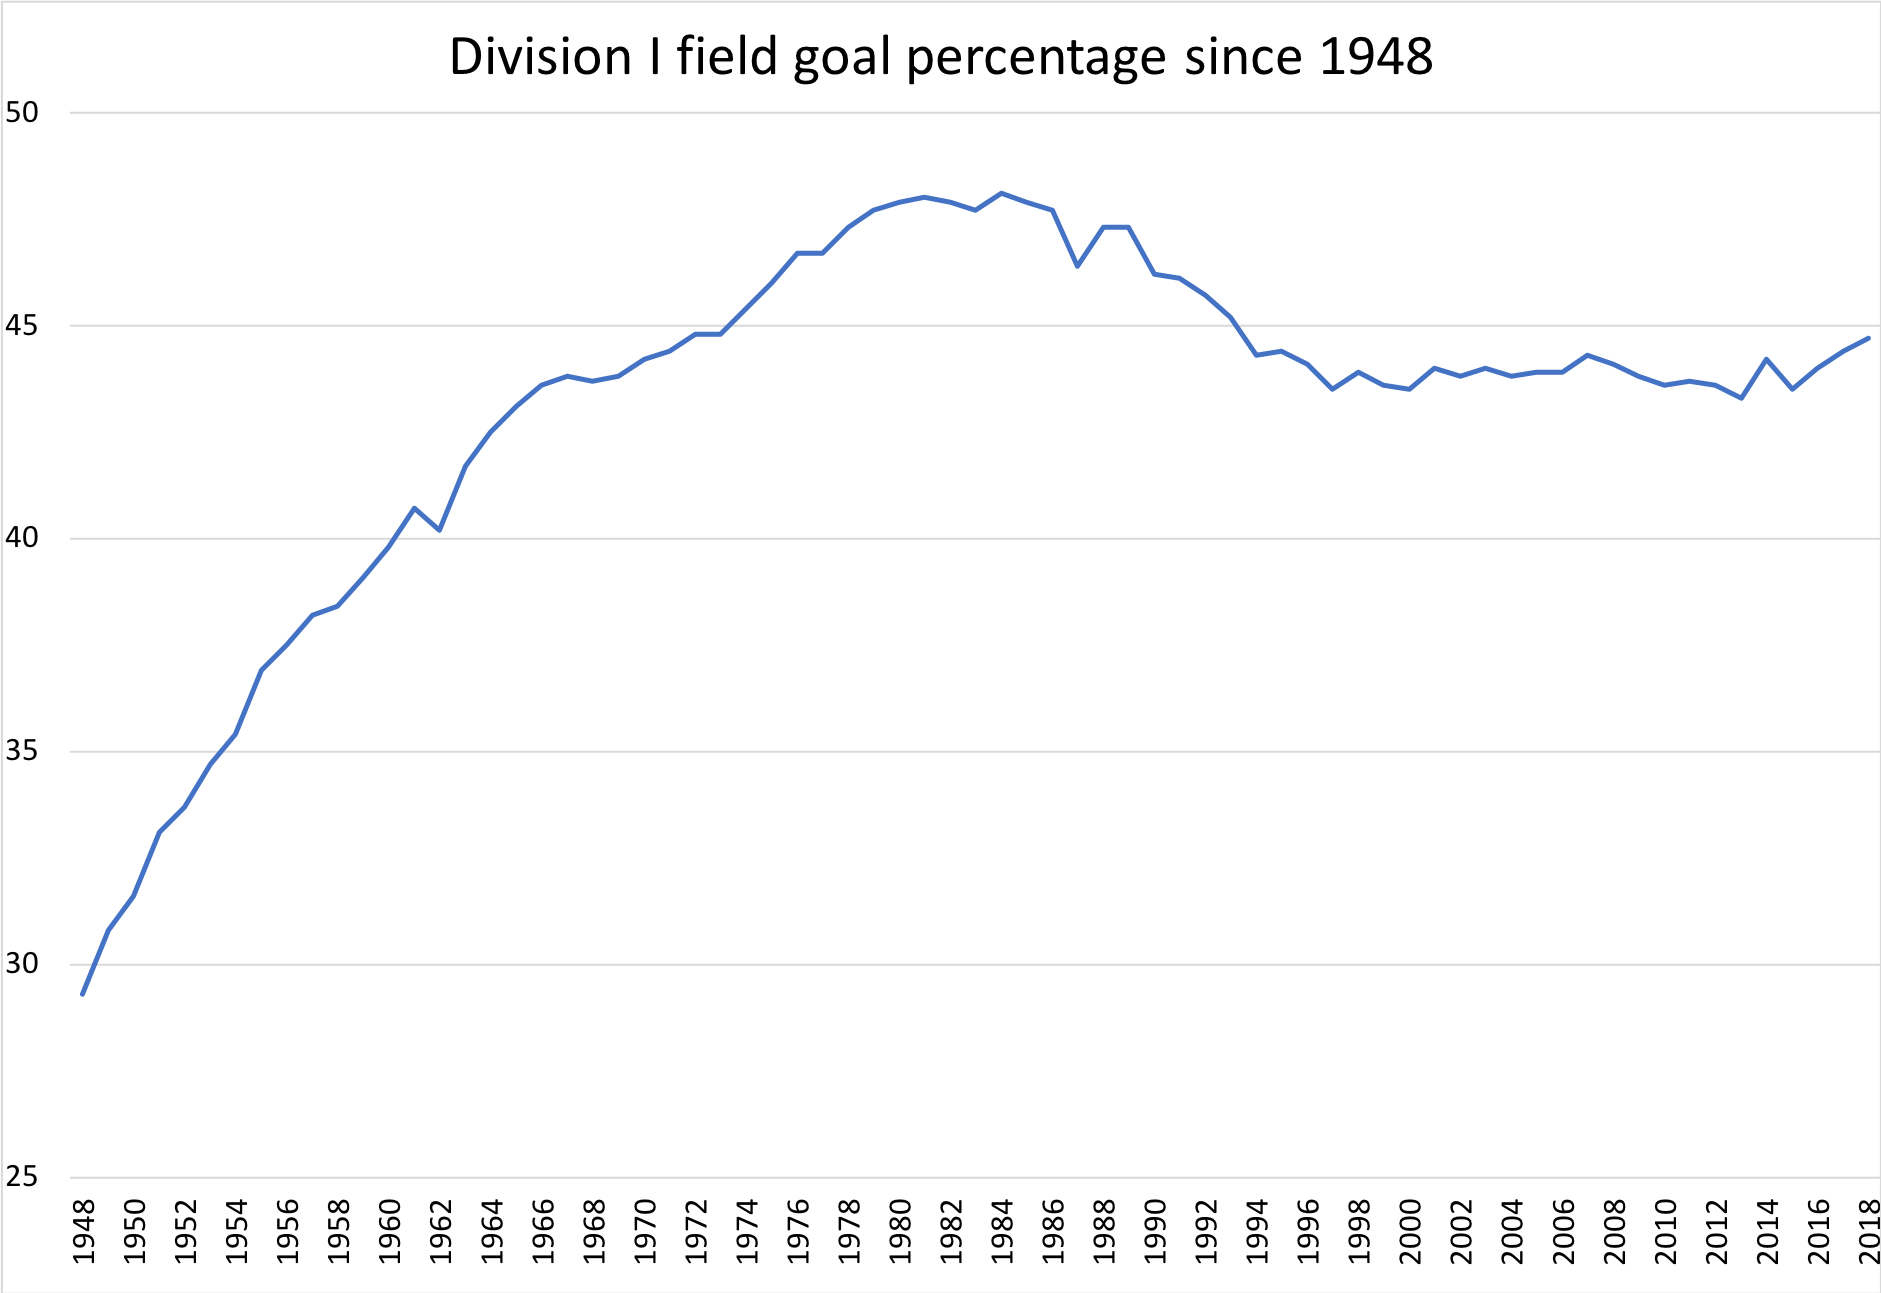 Division I field goal percentage since 1948